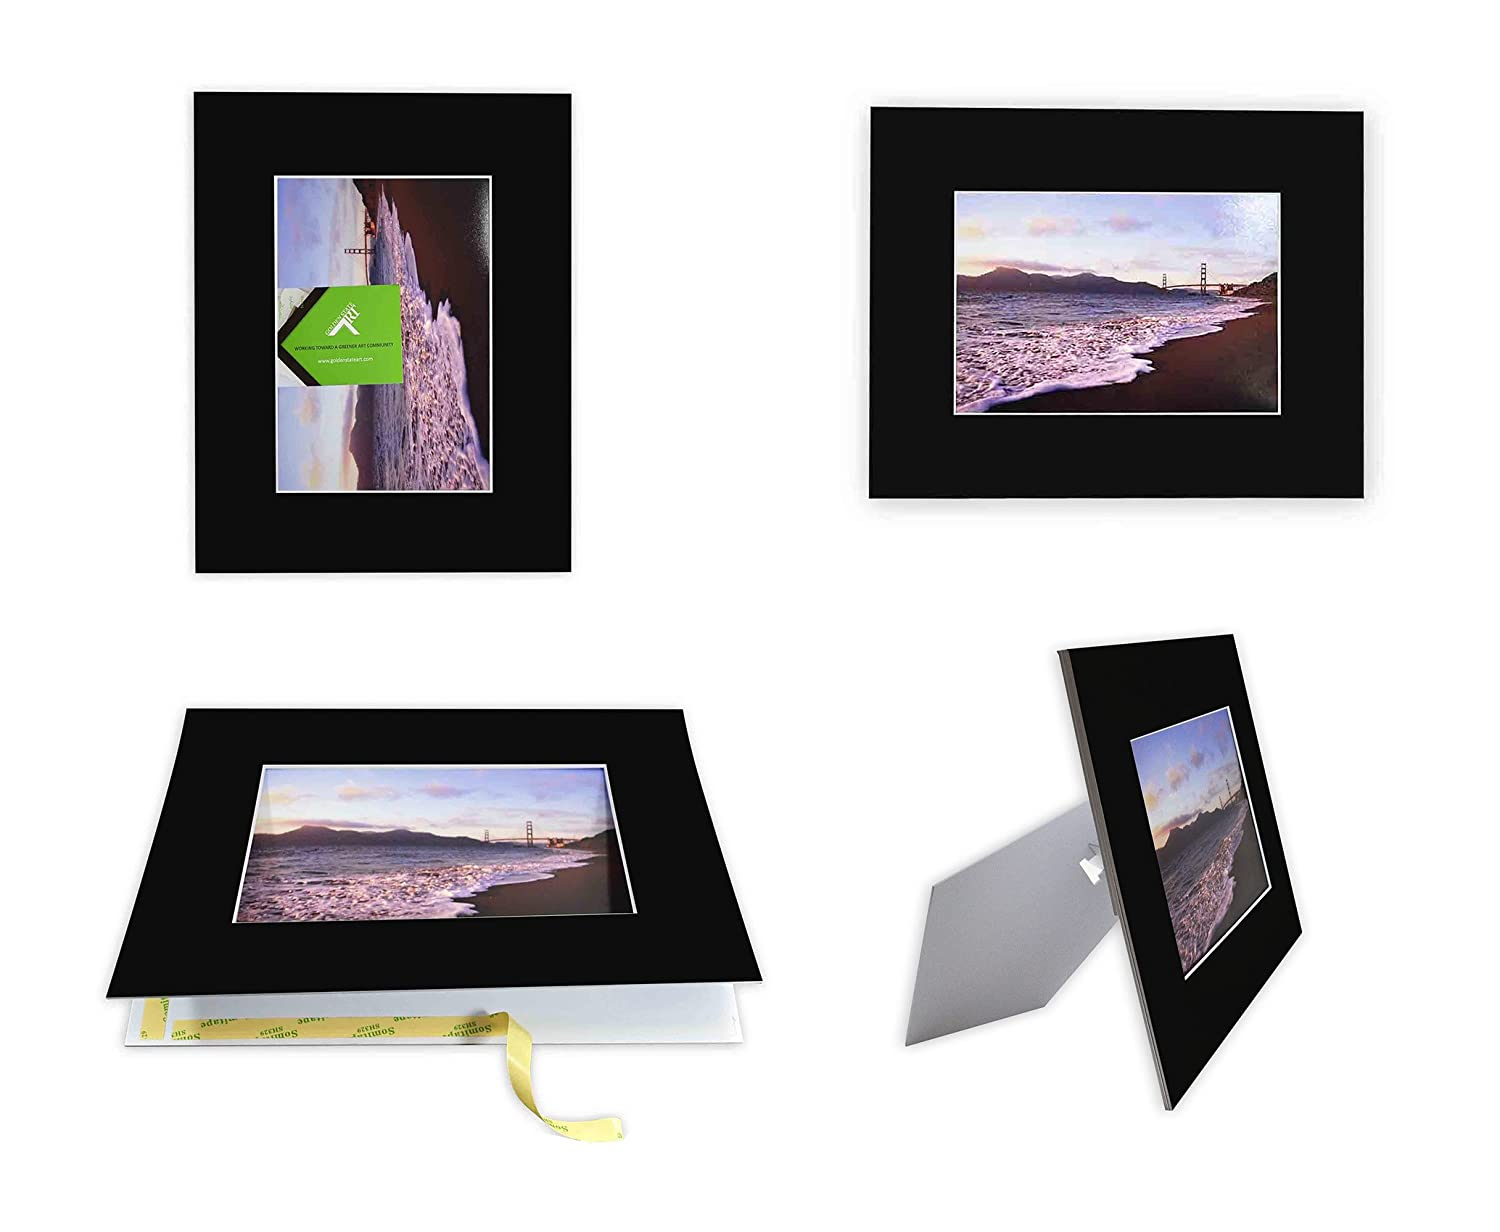 Golden State Art Pack of 10 Black 8x10 Self-assemble Photo Mat for 5x7 picture with backing board pre-gummed W/Easel Display Stand, Includes 10 clear bags A142-E-10Kit-810-57